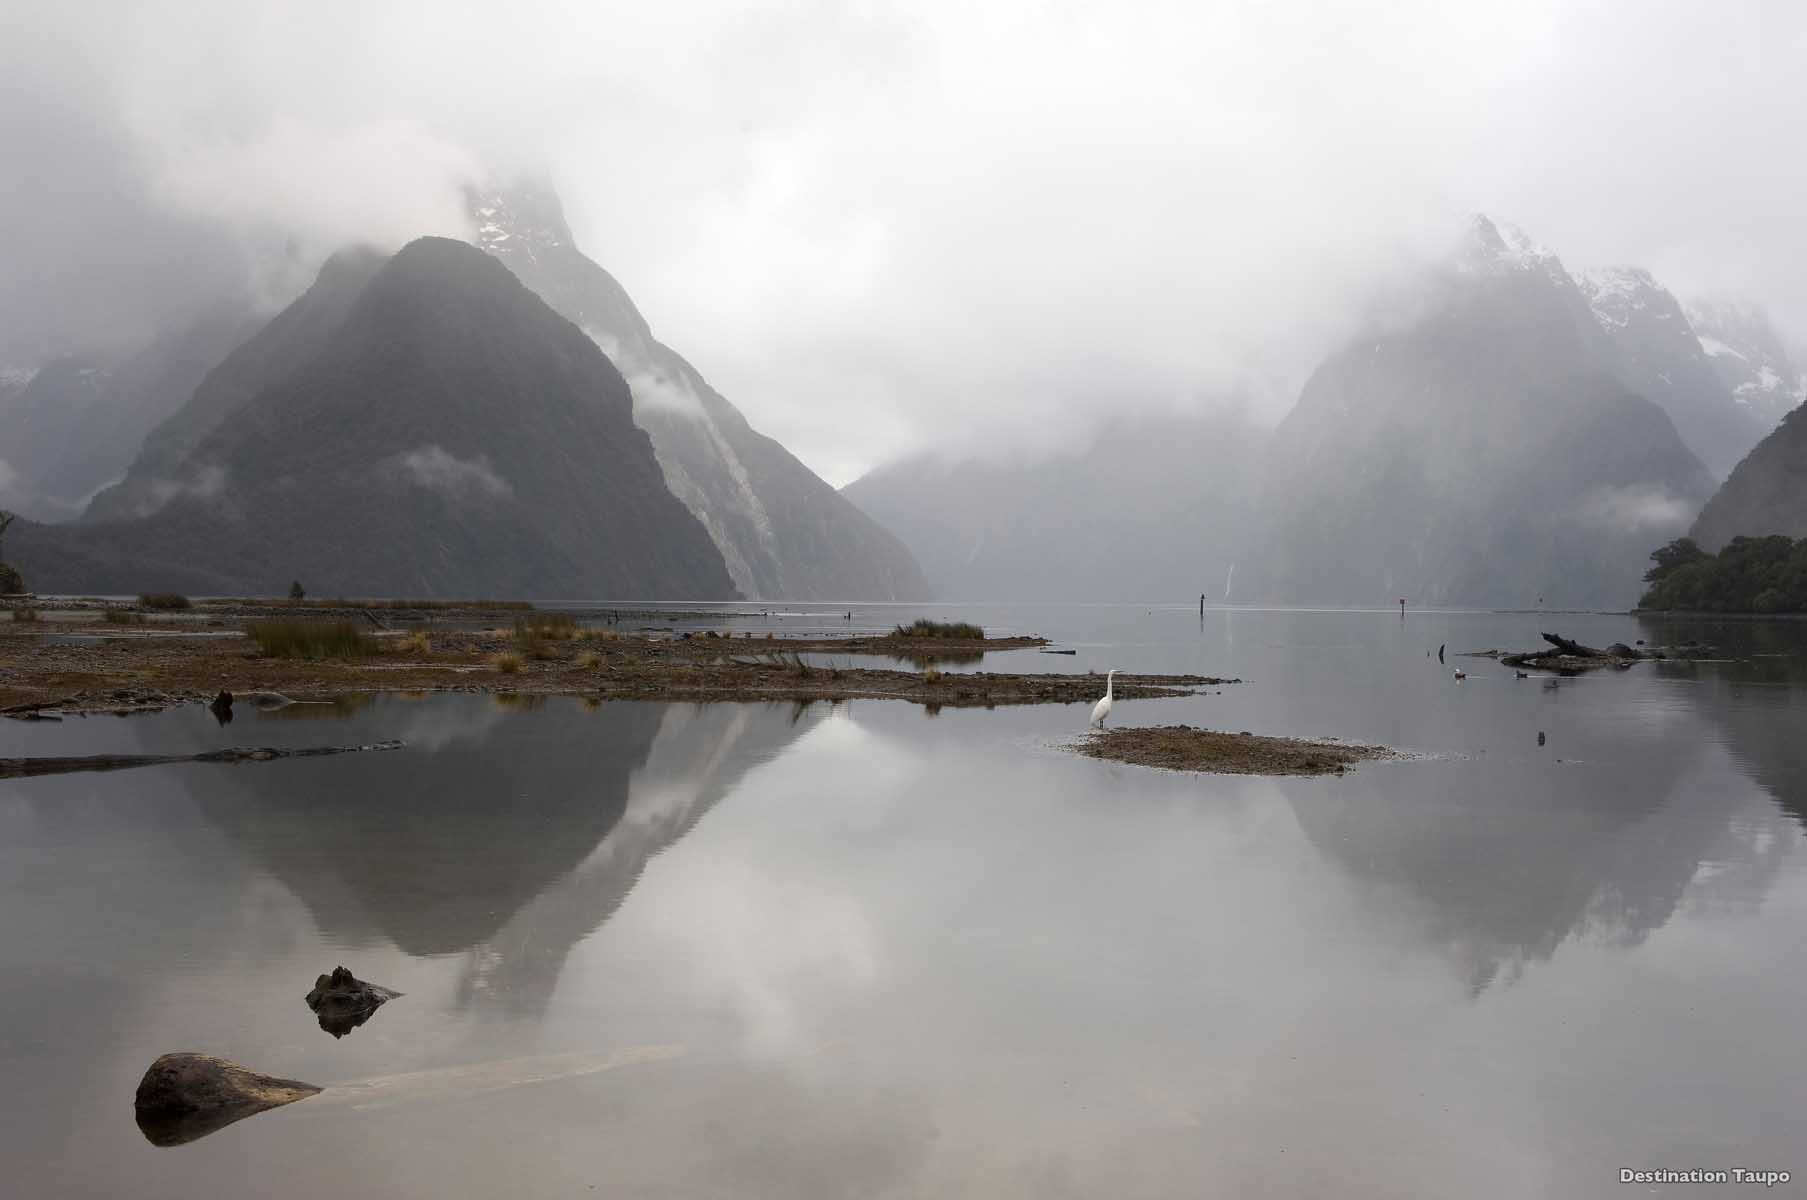 On calm days, the deep waters of Milford Sound reflect the landscapes like a perfect mirror. And when clouds linger around the towering peaks, there's a sense of isolation from the outside world. This fJord and 13 others are part of a protected national park and World Heritage site.